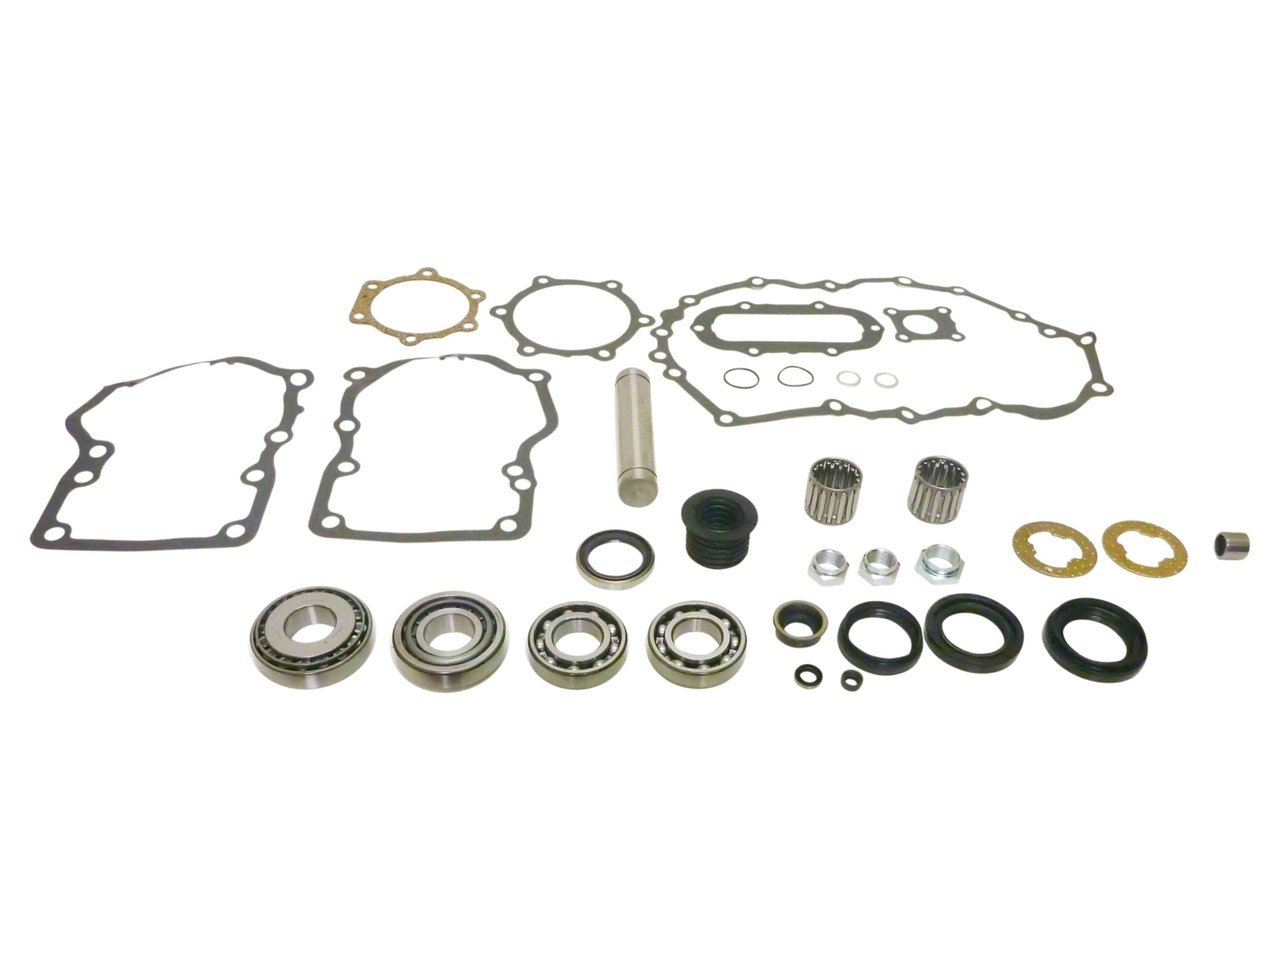 Transfer Case Repair Kit suitable for Landcruiser 60 70